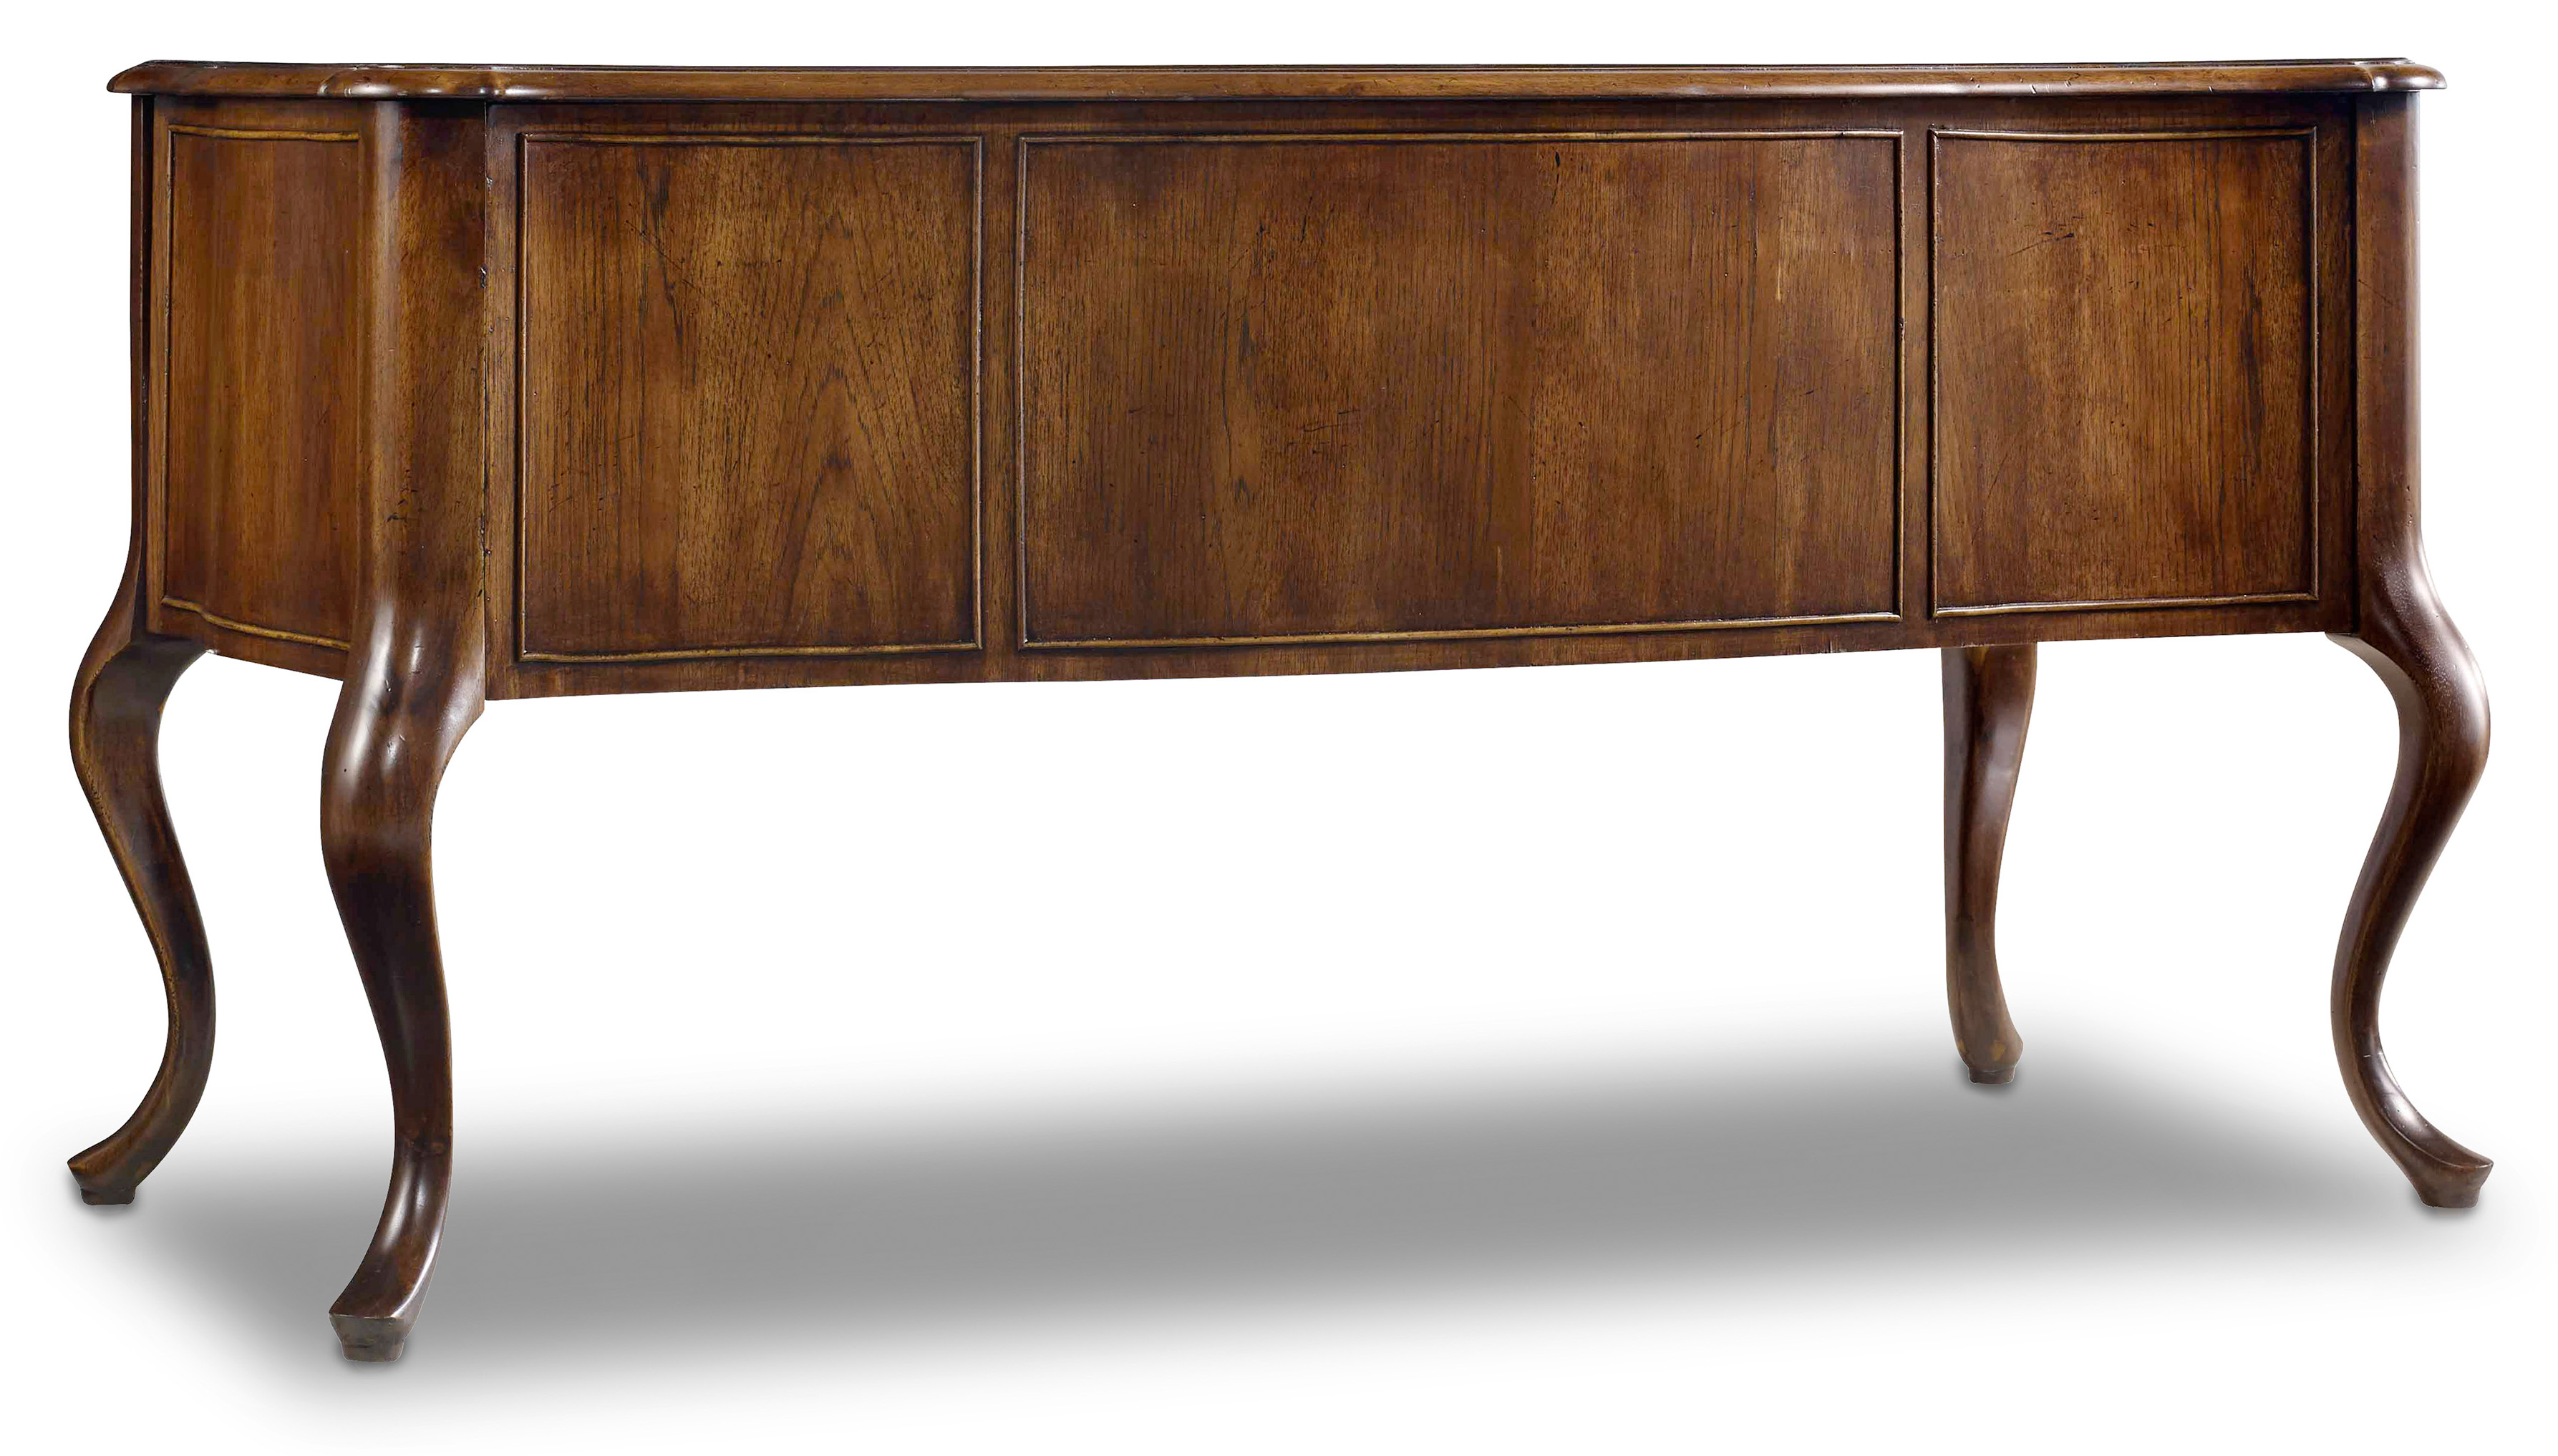 Writing Desk With Bonded Leather Top Insert By Hooker Furniture Wolf And Gardiner Wolf Furniture